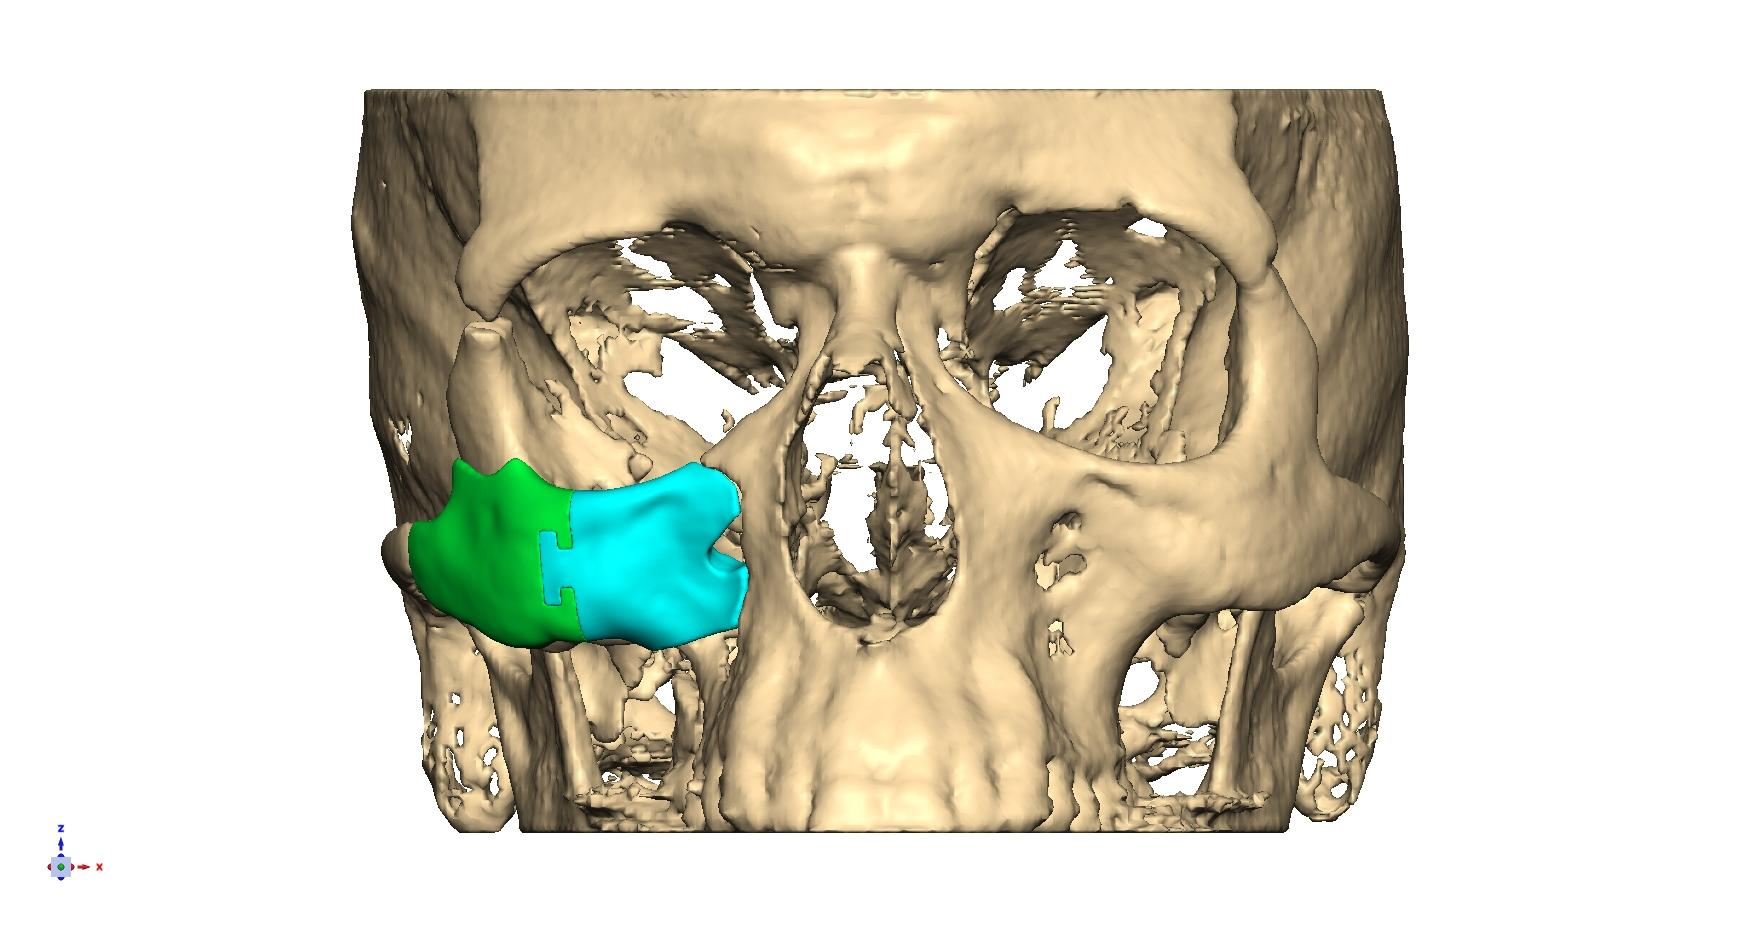 A 3D skull showing implant reconstruction of the right cheek (zygoma).